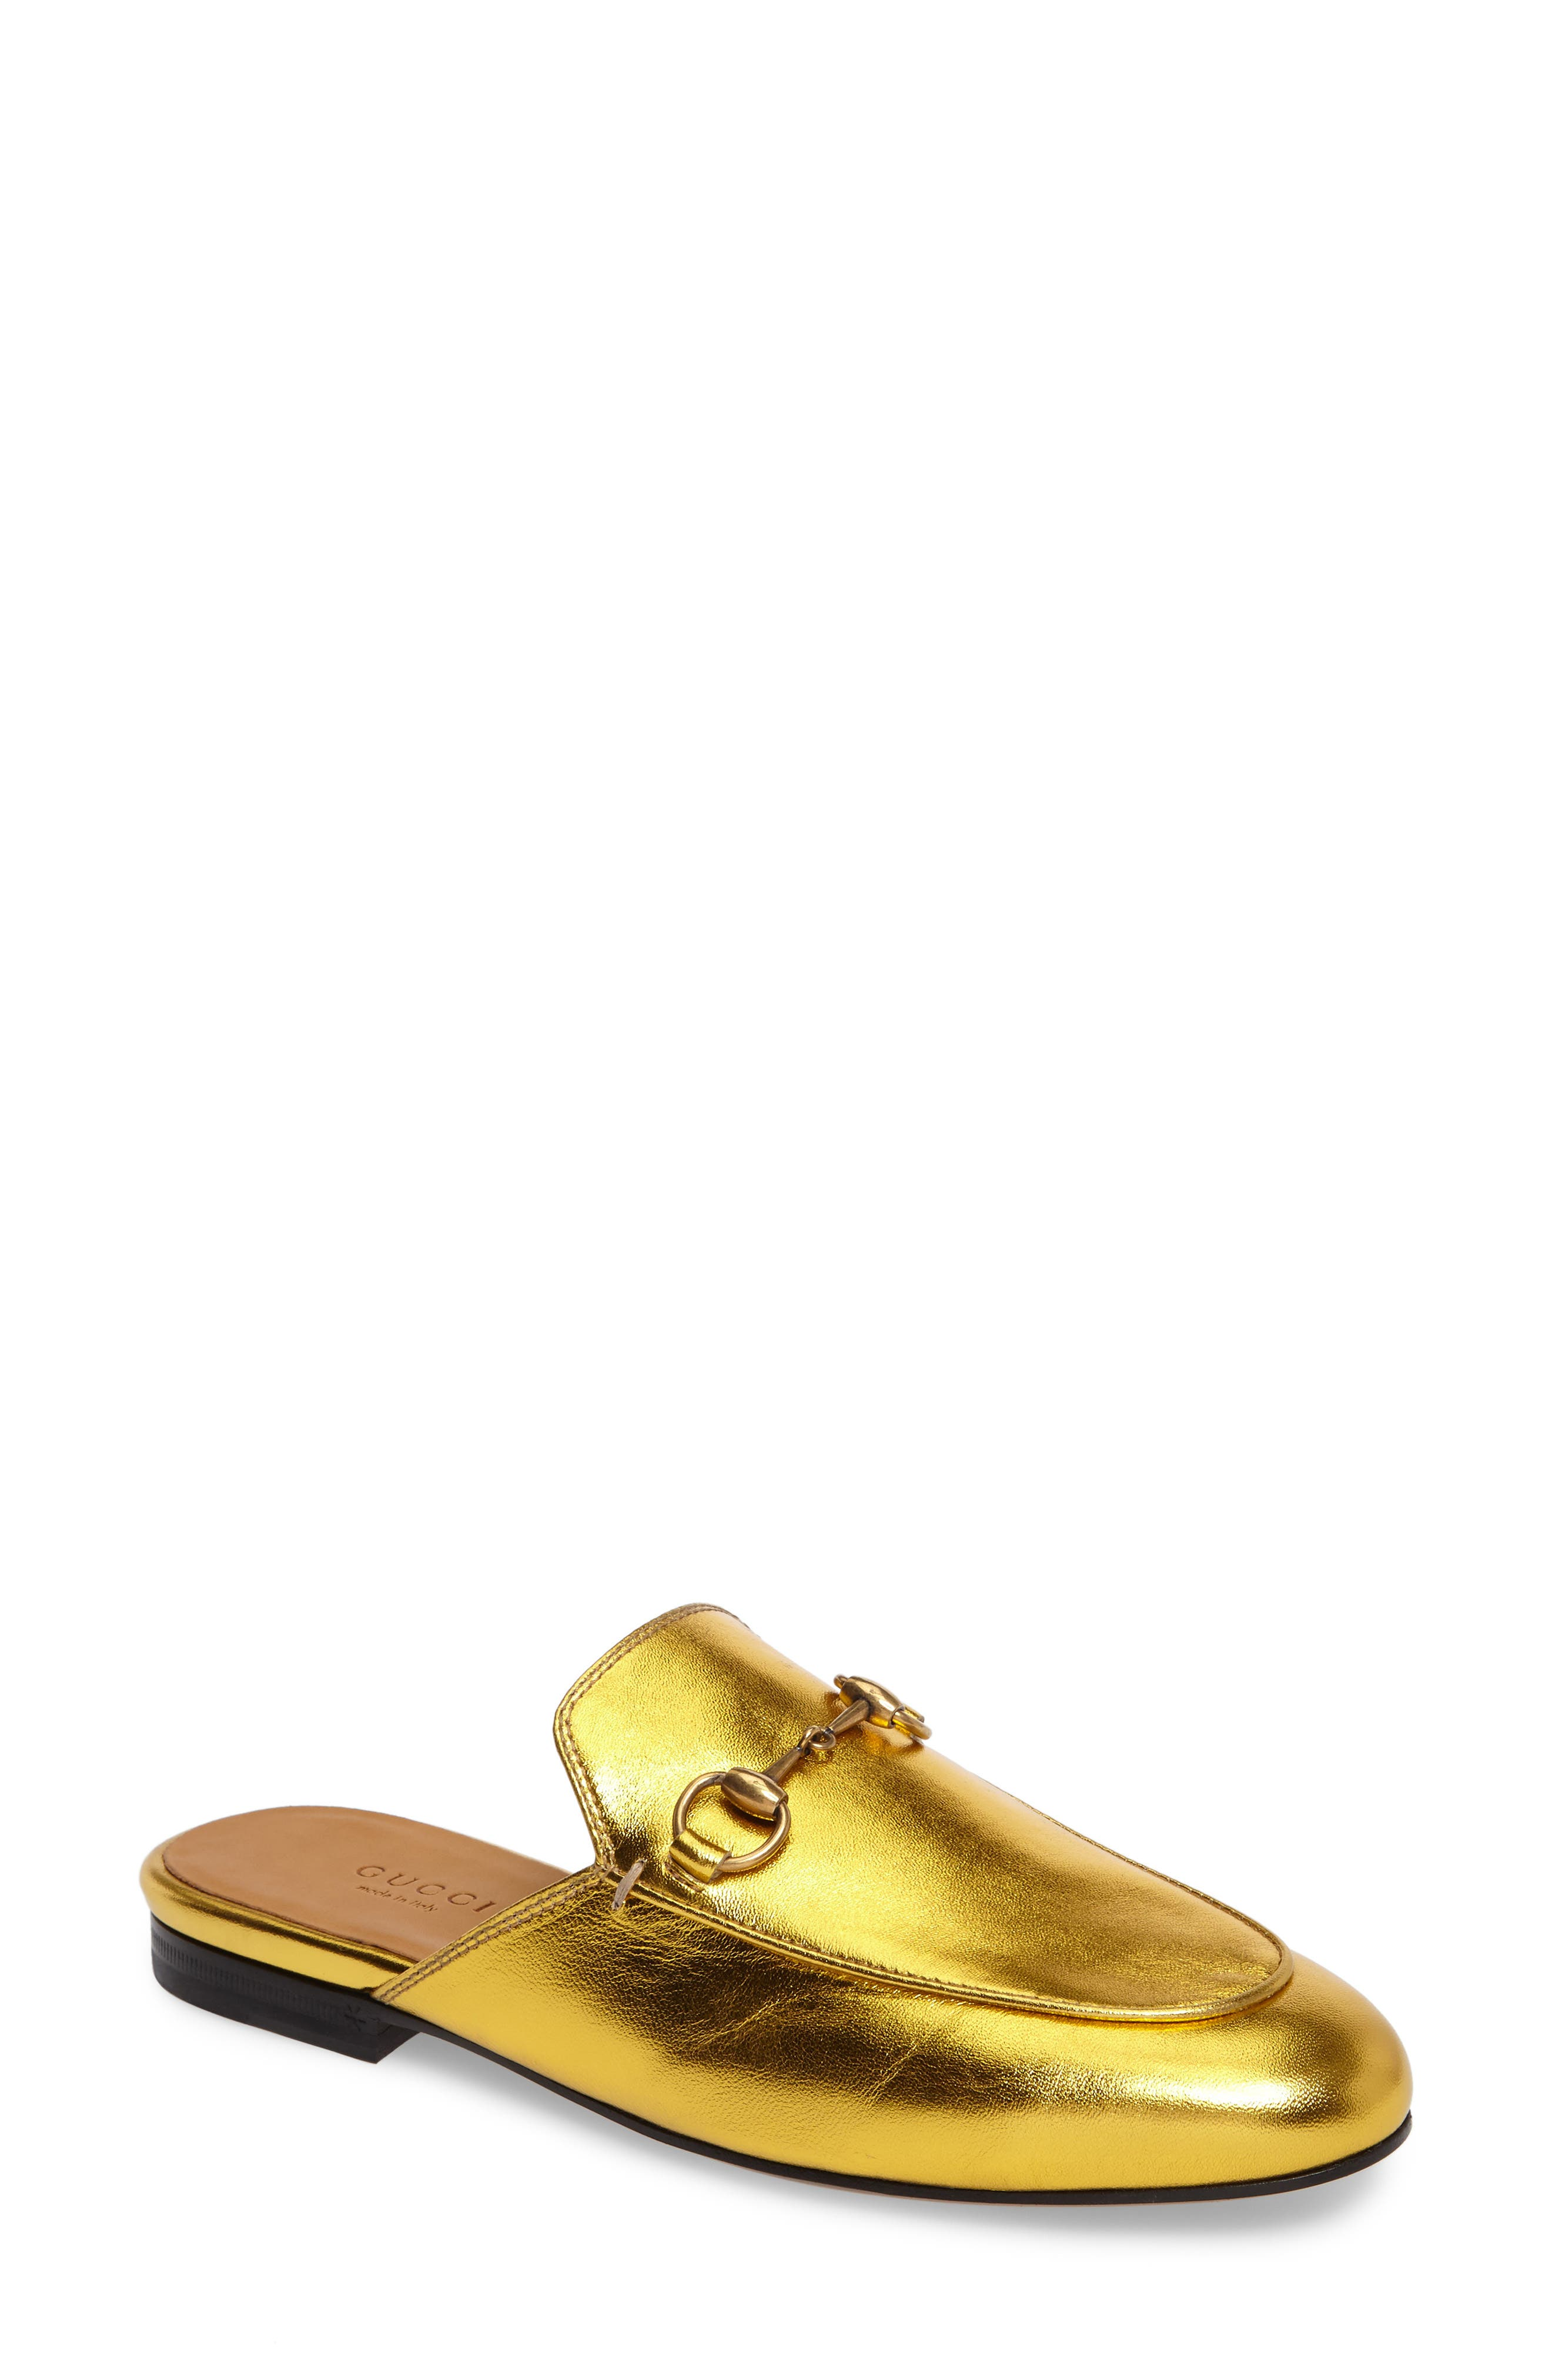 Princetown Loafer Mule,                             Main thumbnail 1, color,                             Metallic Gold Leather